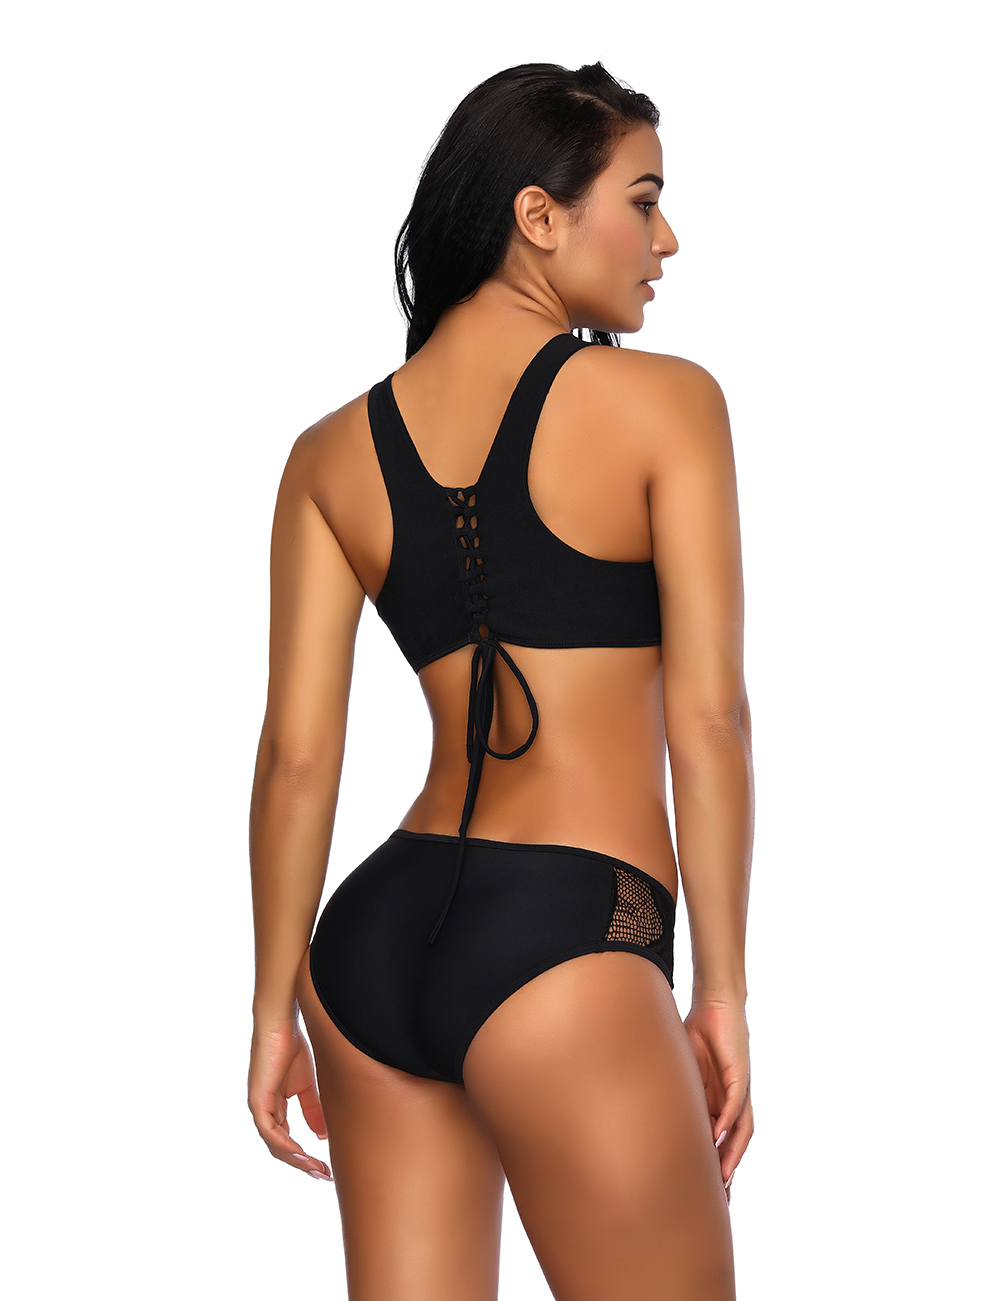 //cdn.affectcloud.com/hexinfashion/upload/imgs/Swimwear/Two_Piece_Swimsuit/F180069BK01/F180069BK01-201911055dc1402b4df97.jpg